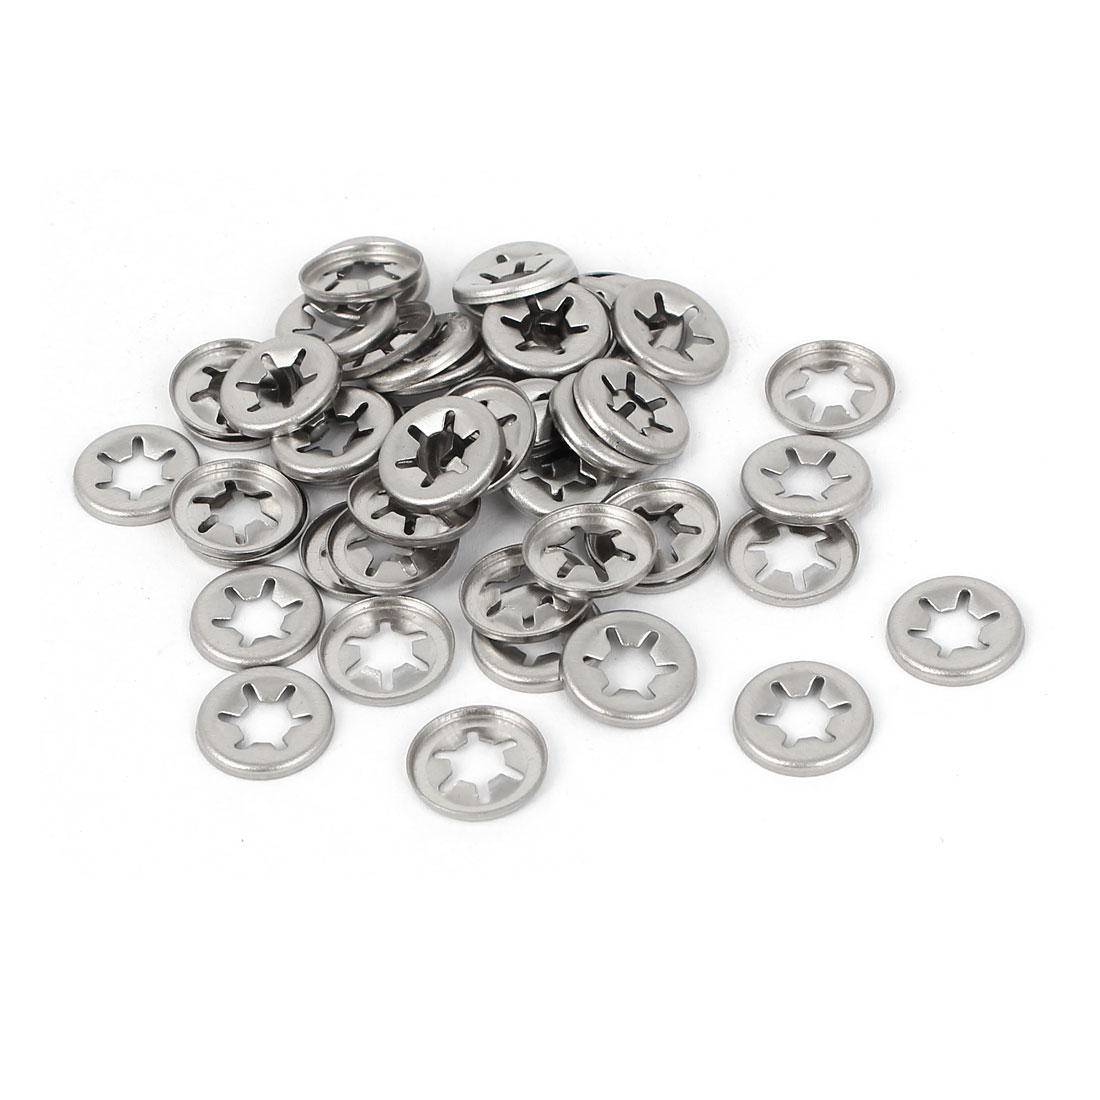 5mm x 11.5mm x 1.3mm Starlock Push On Fasteners Locking Washers 100 Pcs